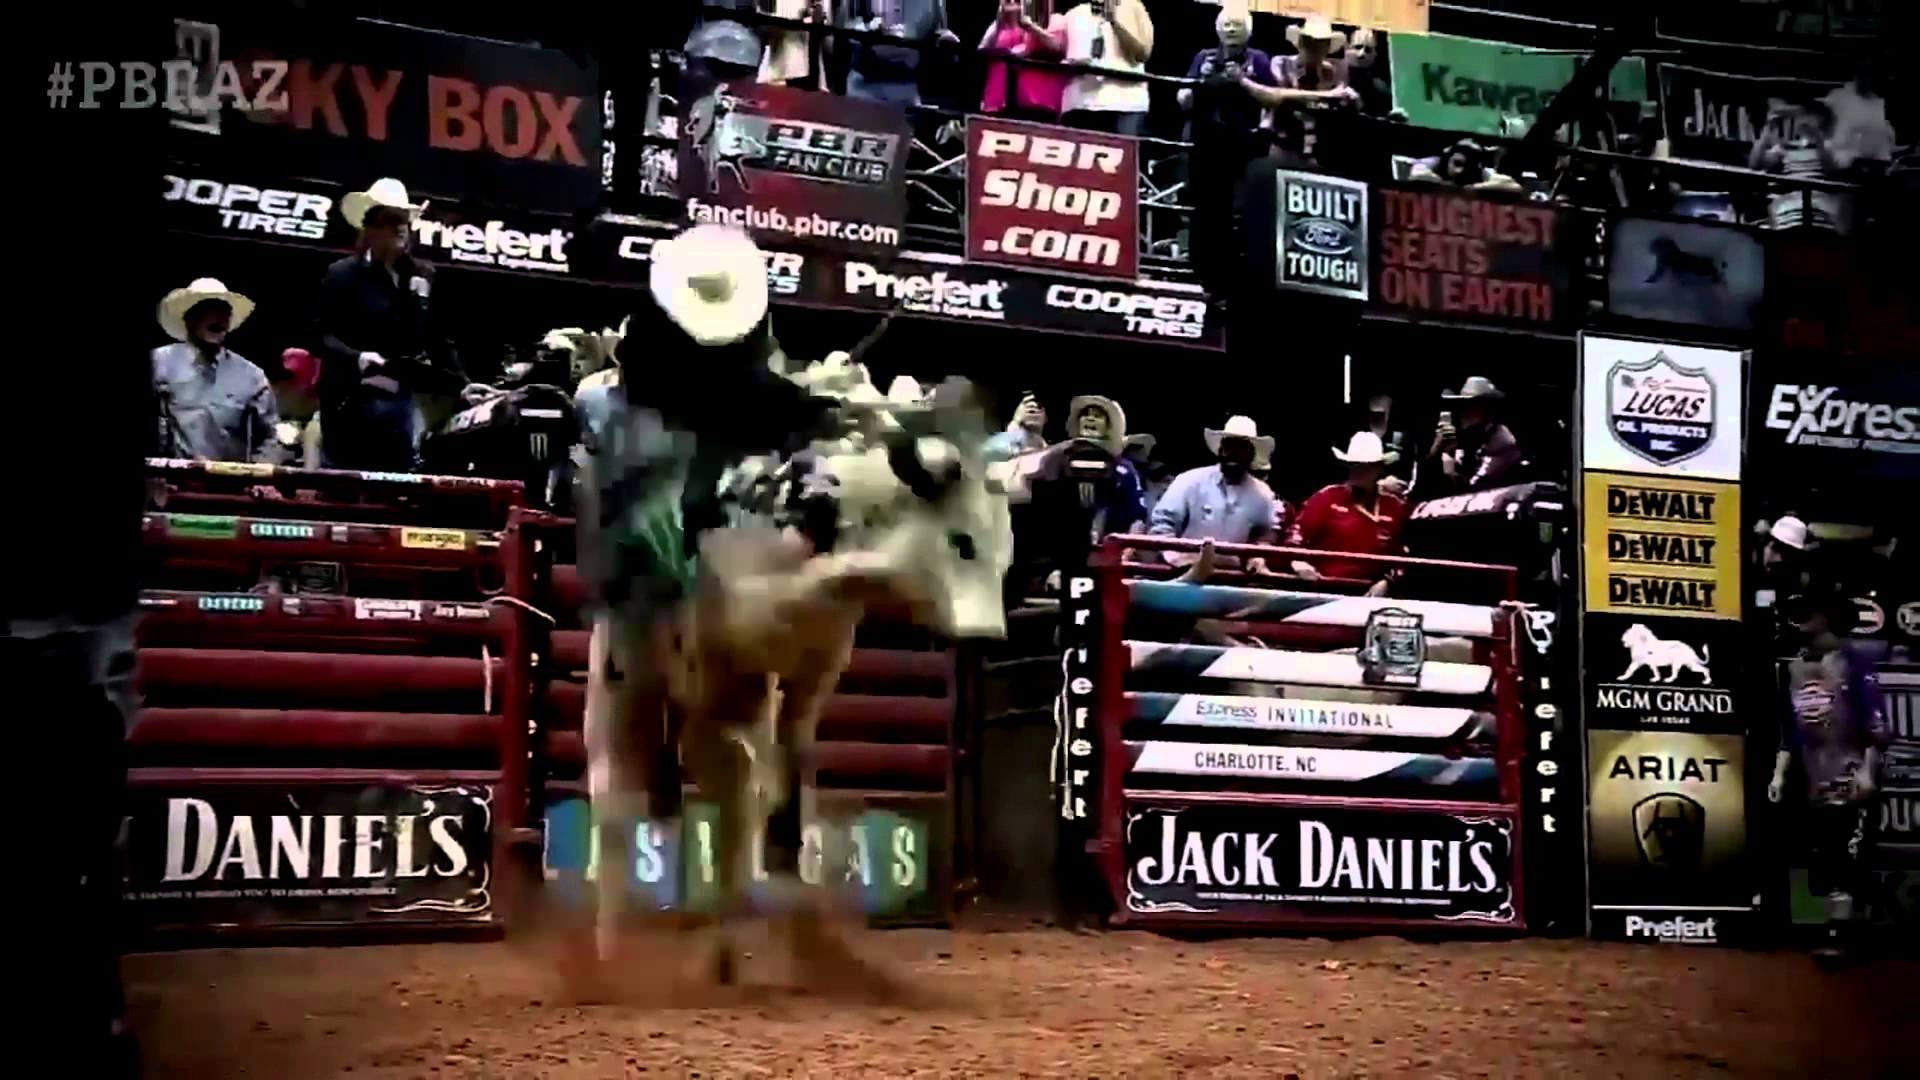 1920x1080 PBR's Top bull Air Time takes out J.B Mauney